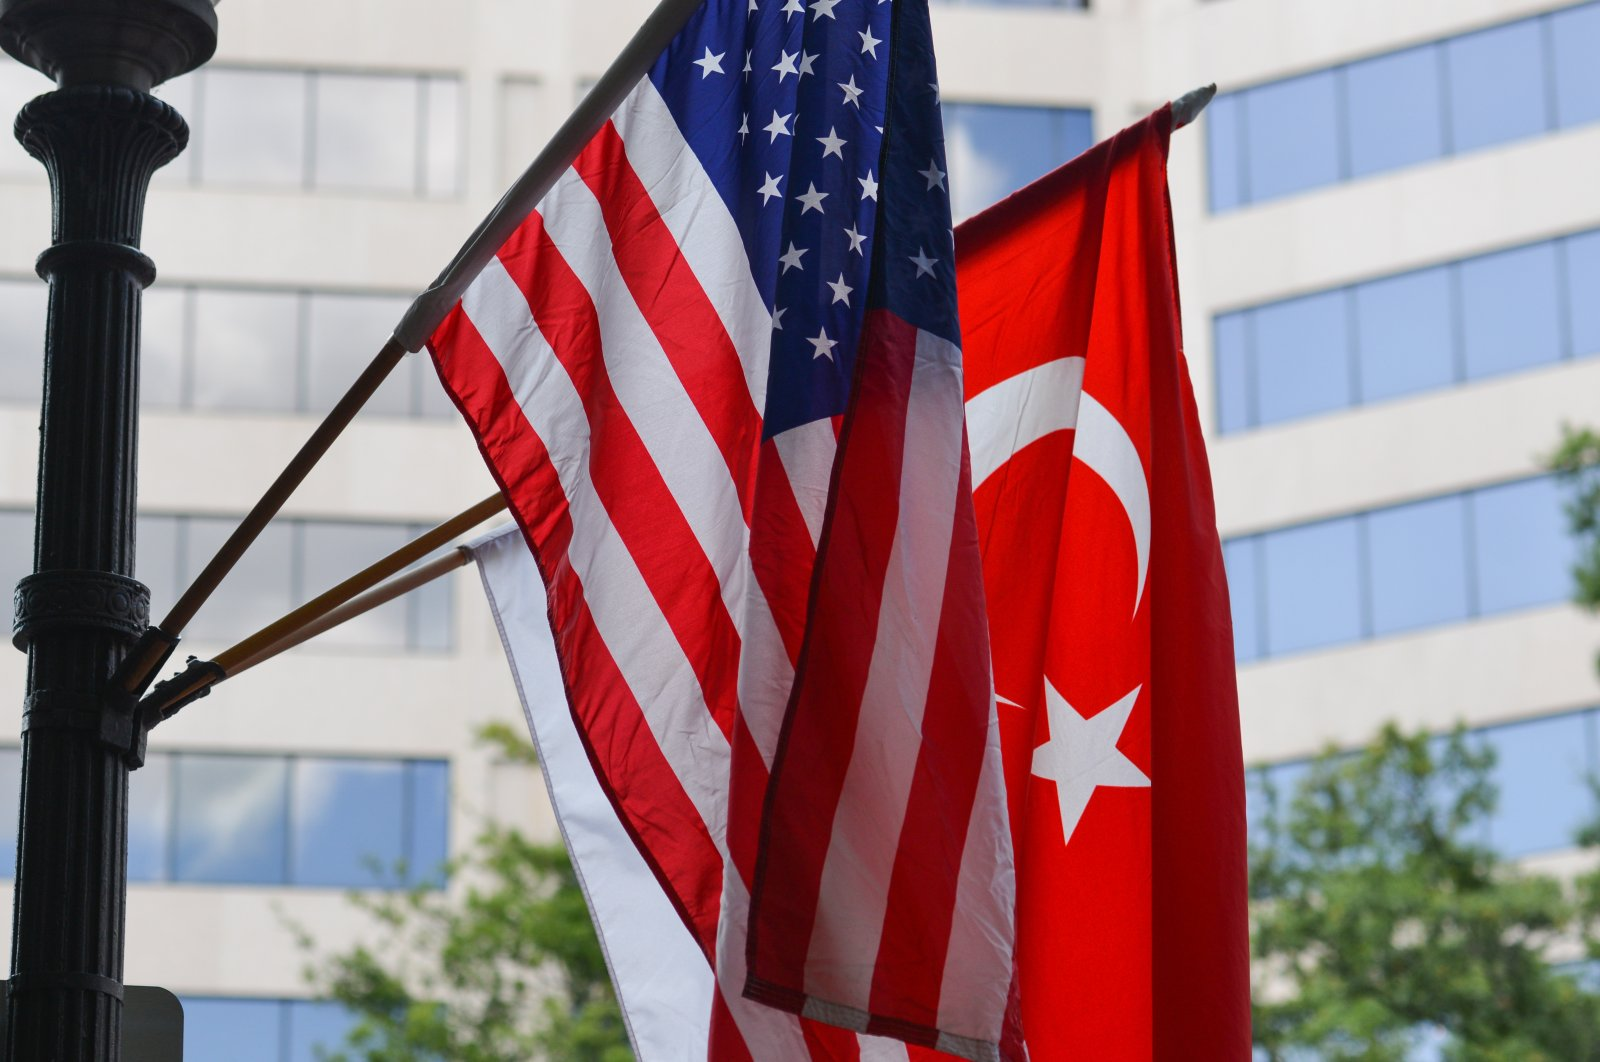 Turkey's and US' flags seen in this undated file photo. (Shutterstock Photo)